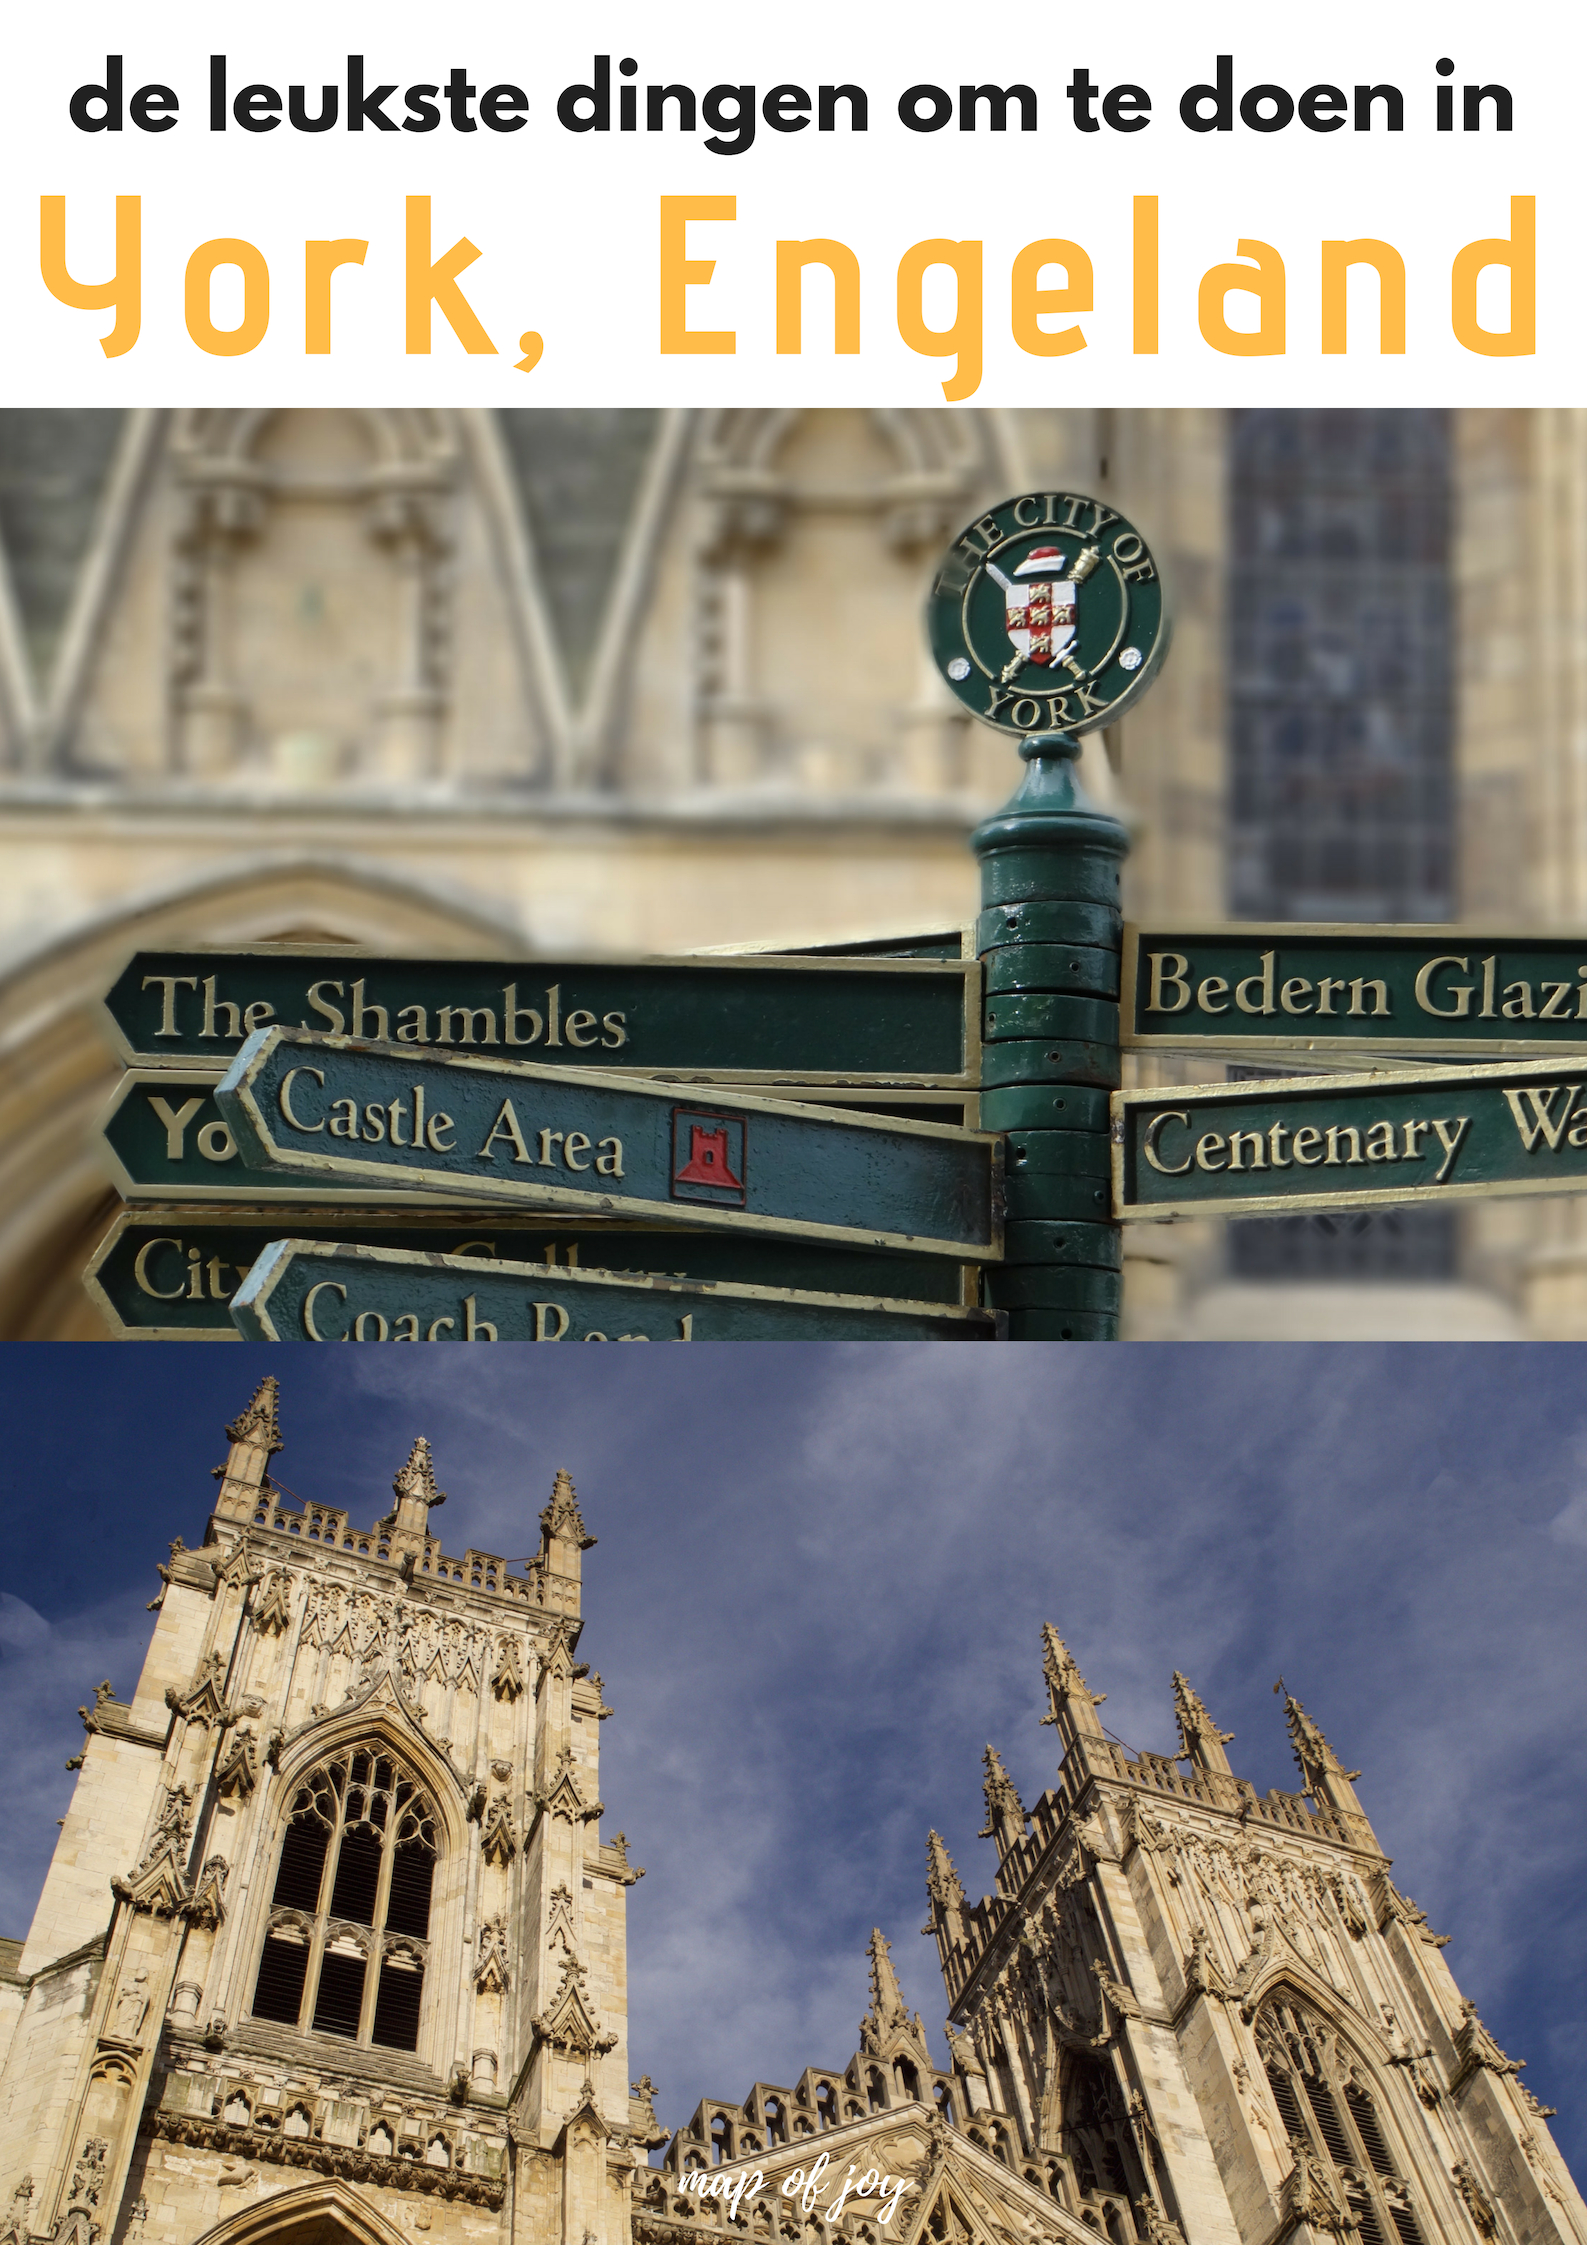 De leukste dingen om te doen in York, Engeland - Map of Joy